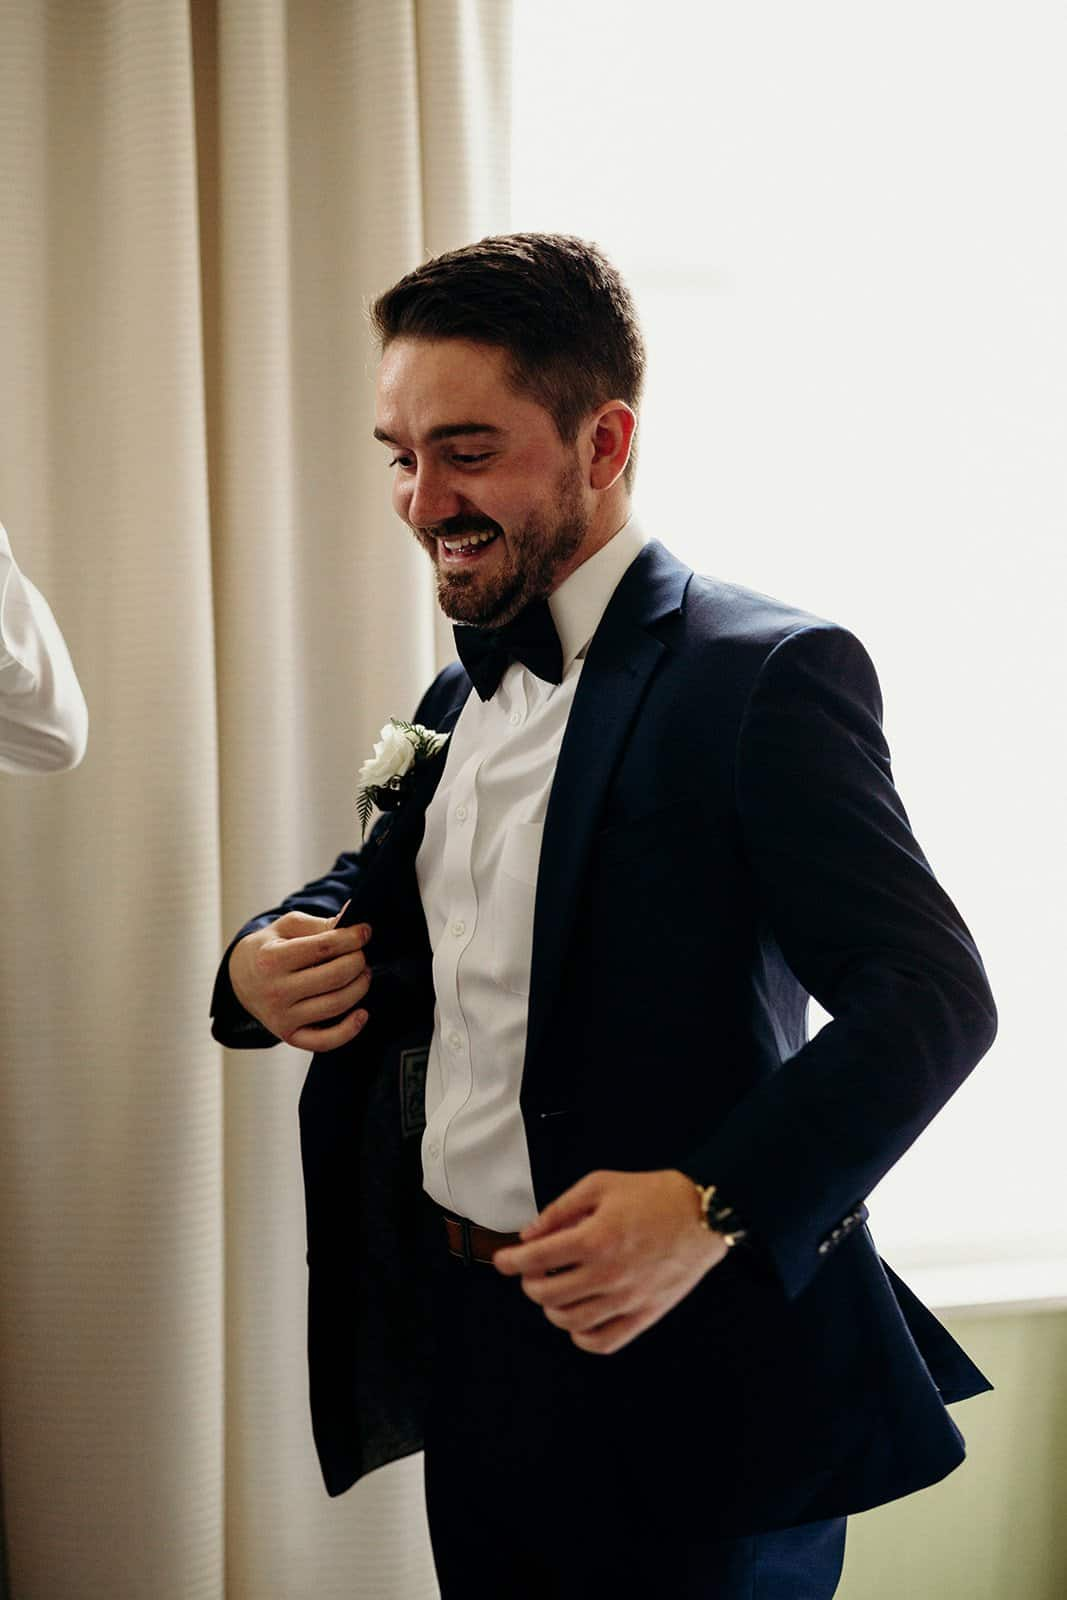 Groomsman smiles and laughs while getting ready